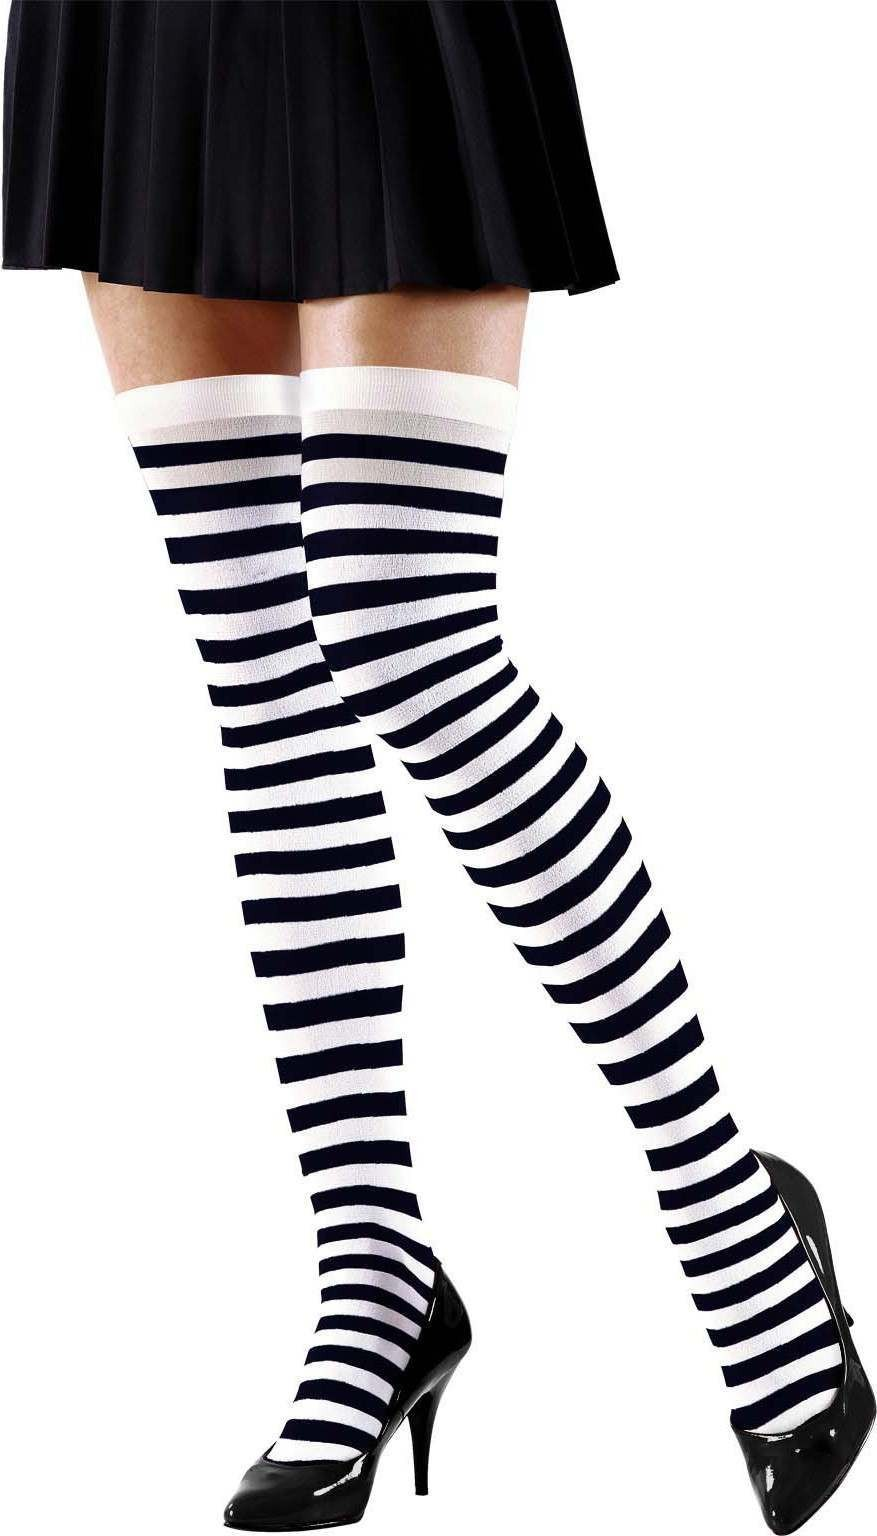 Ladies Xl White-Black Striped Over The Knee Socks - 70 Den Tights - Size 18-20